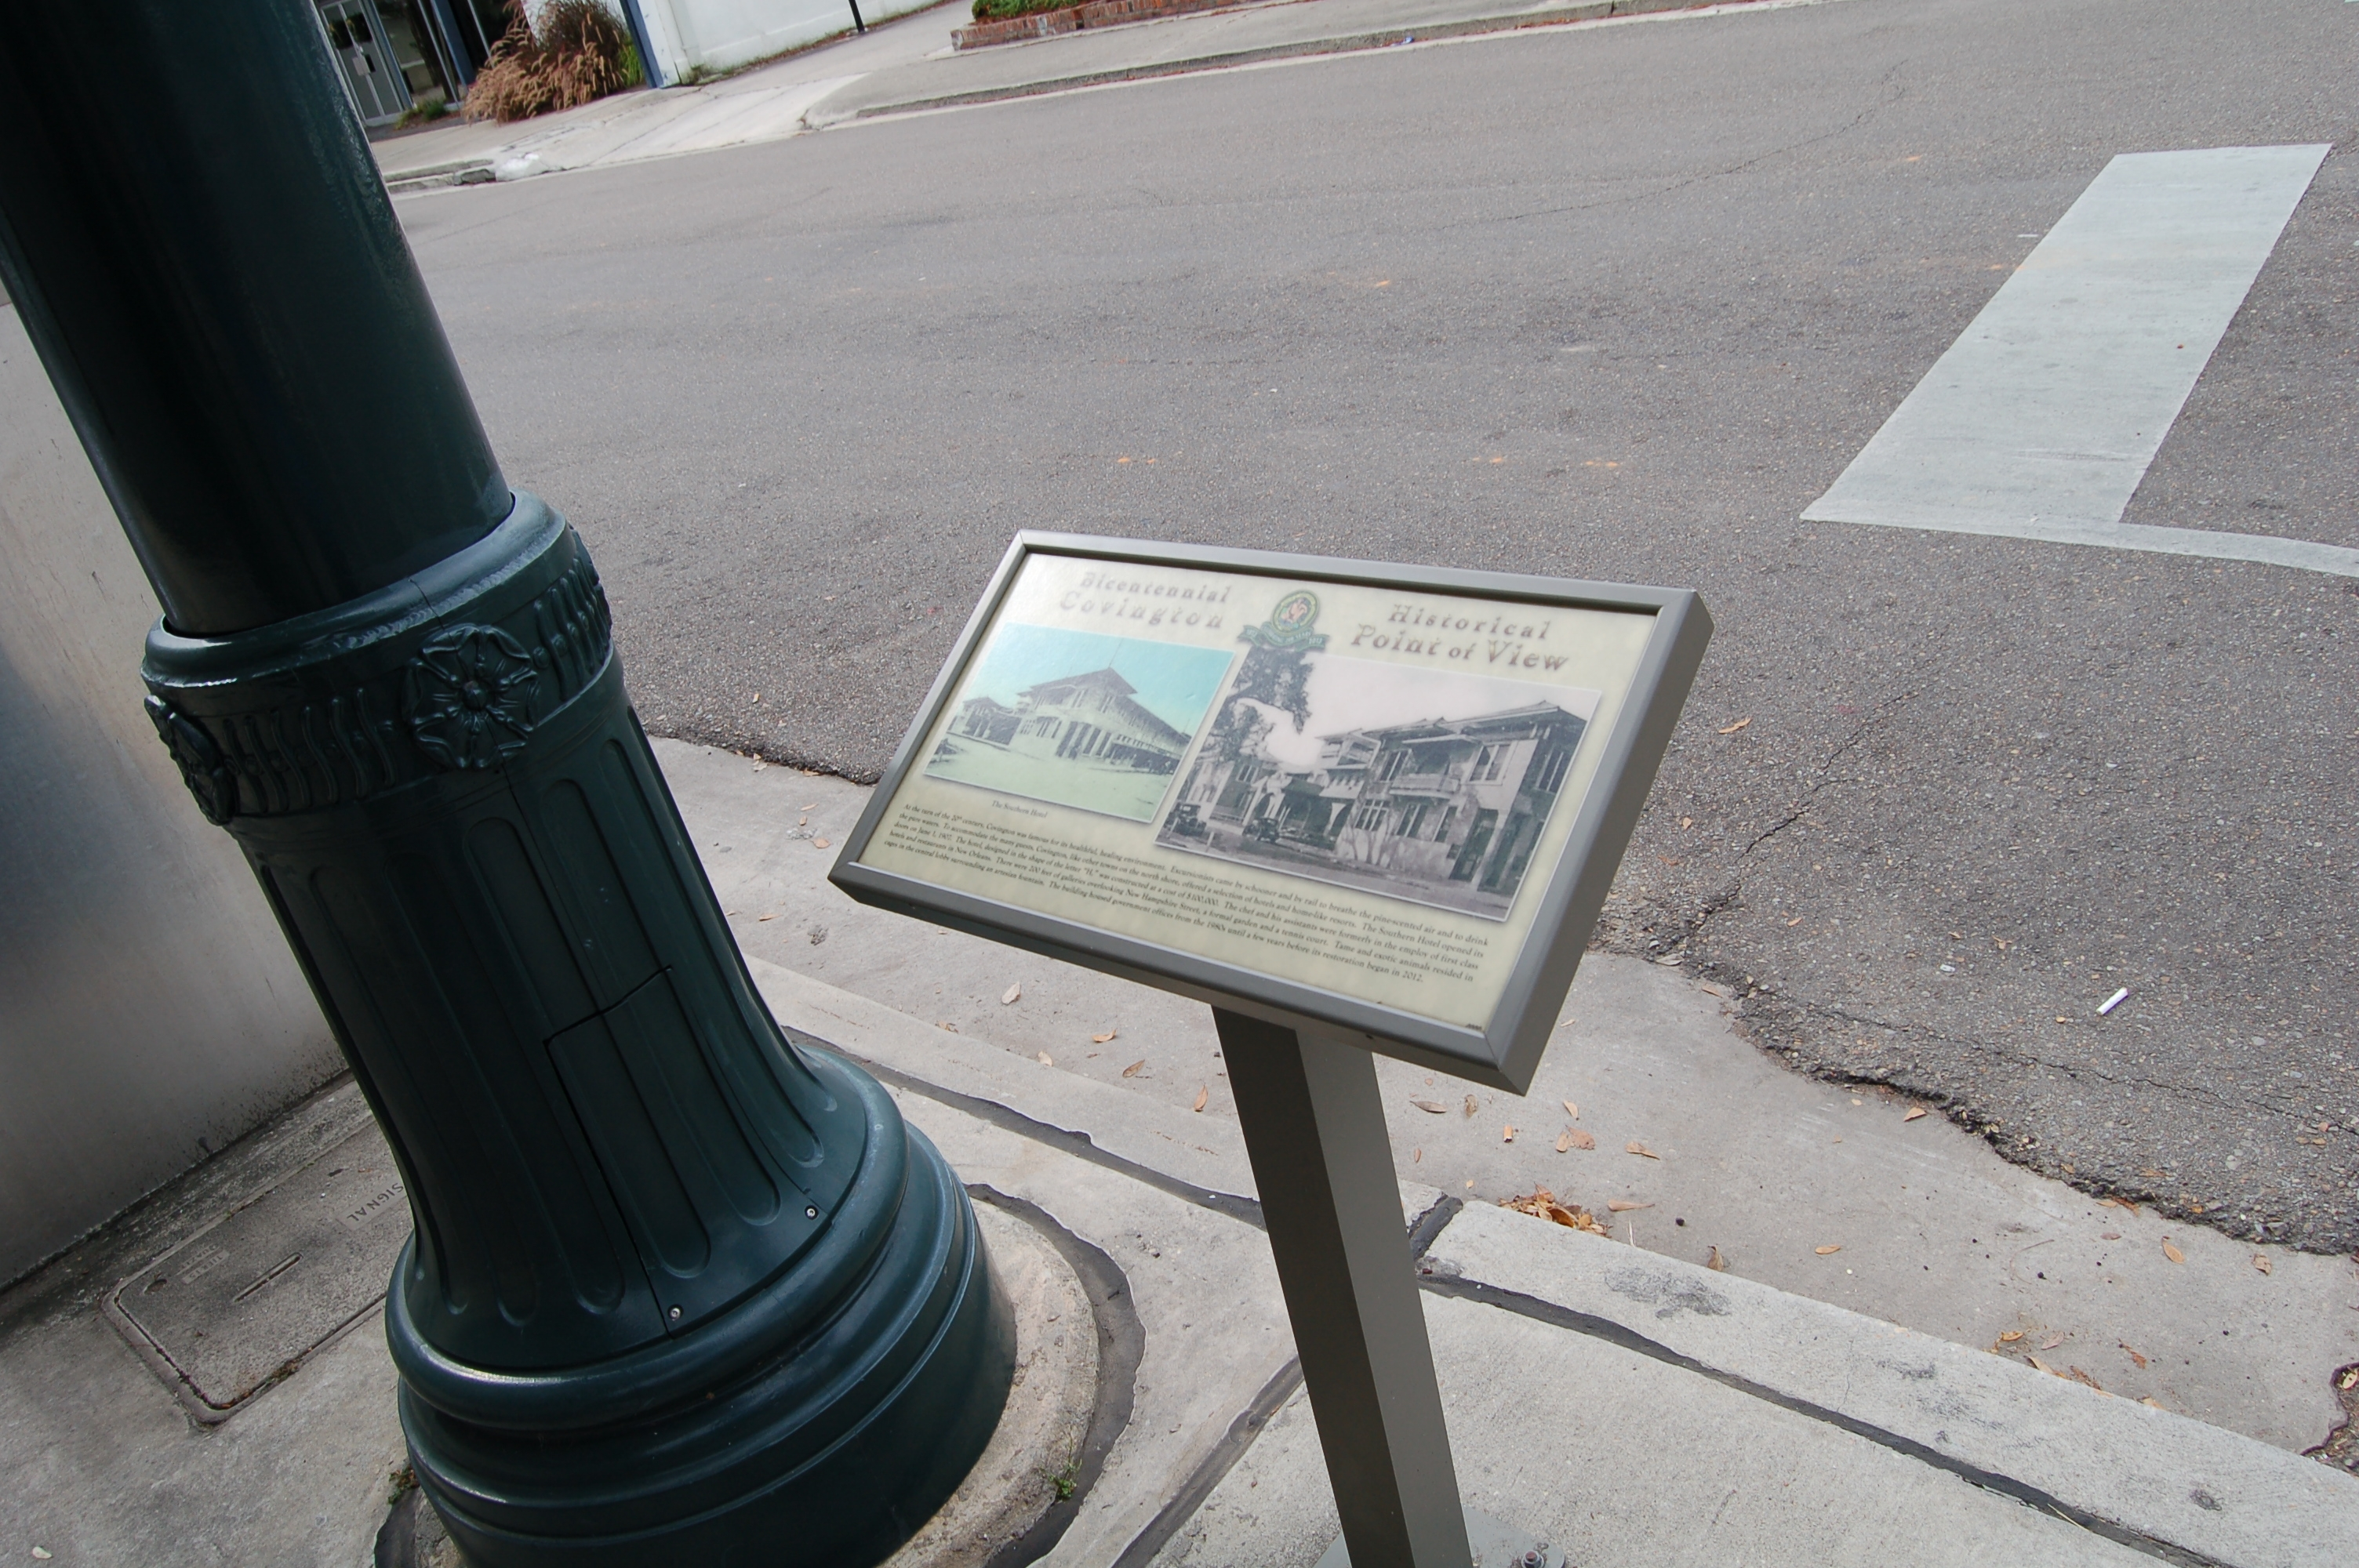 The Southern Hotel Marker